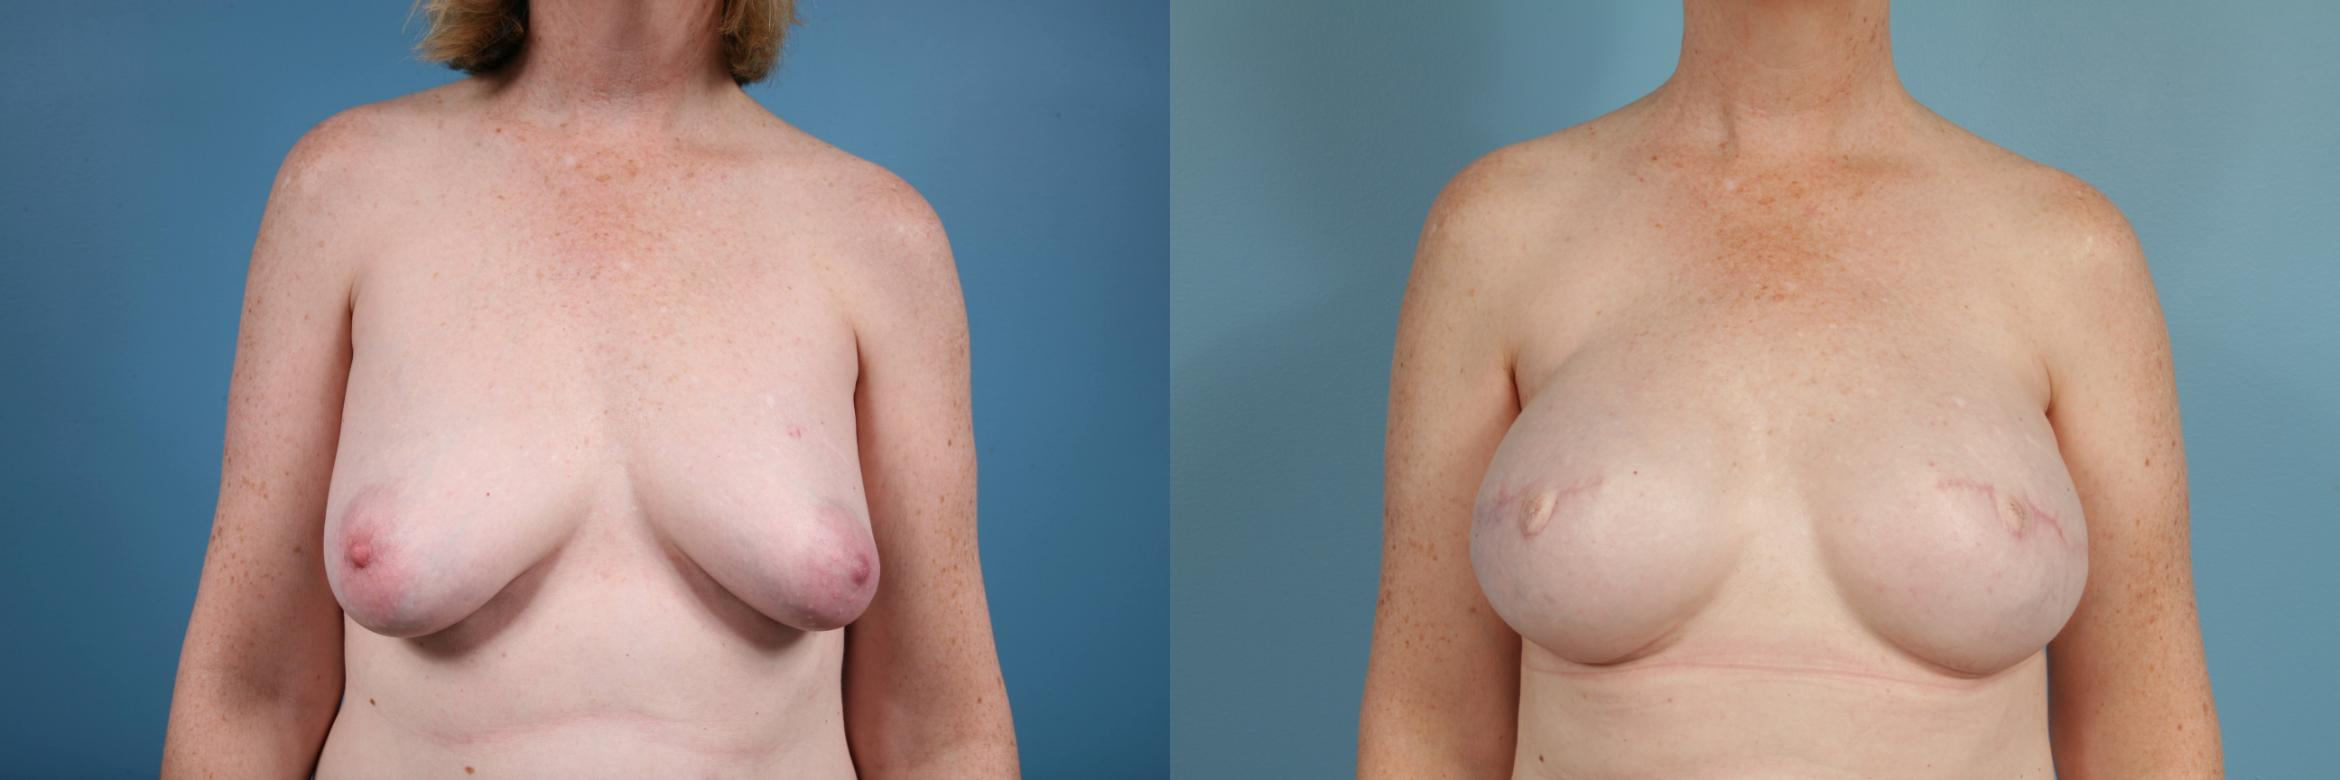 Breast Reconstruction Case 84 Before & After View #1 | Chicago, IL | TLKM Plastic Surgery